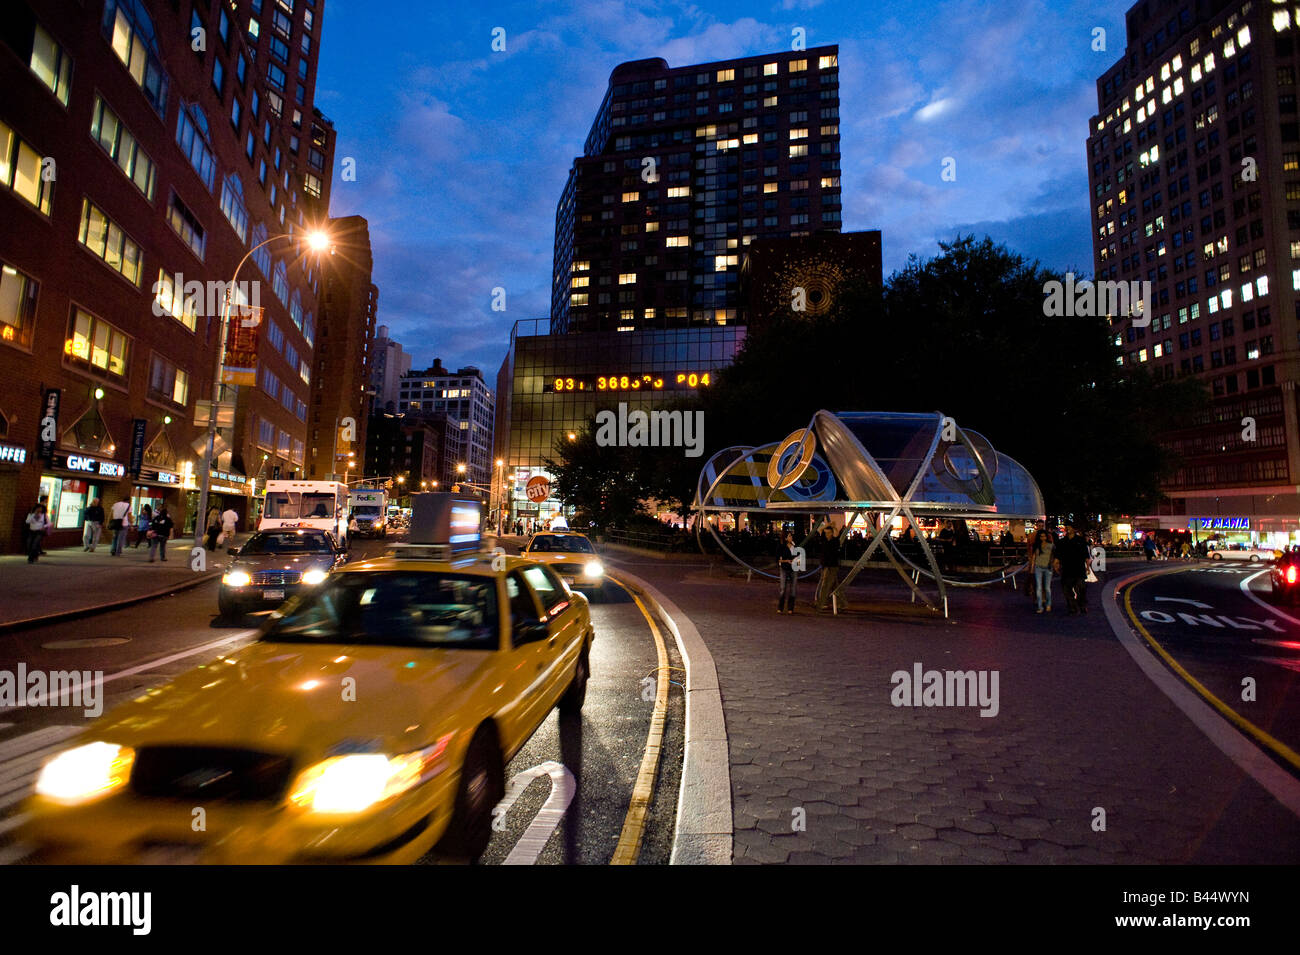 New York yellow cab at Union Square in the evening with clock of the Metronome in the background - Stock Image